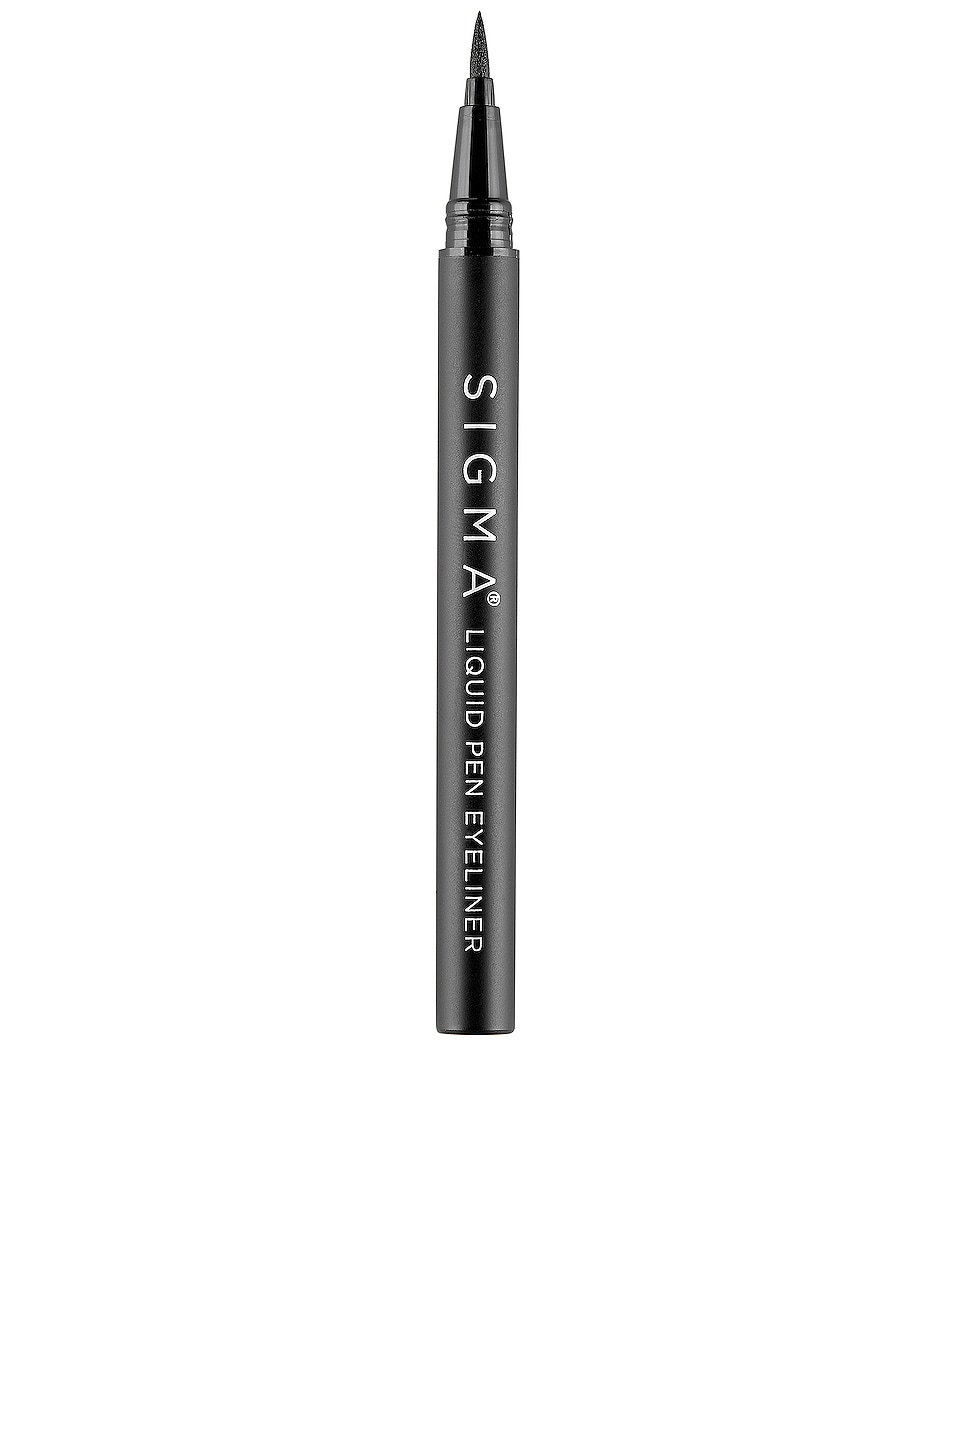 Sigma Beauty Liquid Pen Eyeliner in Wicked